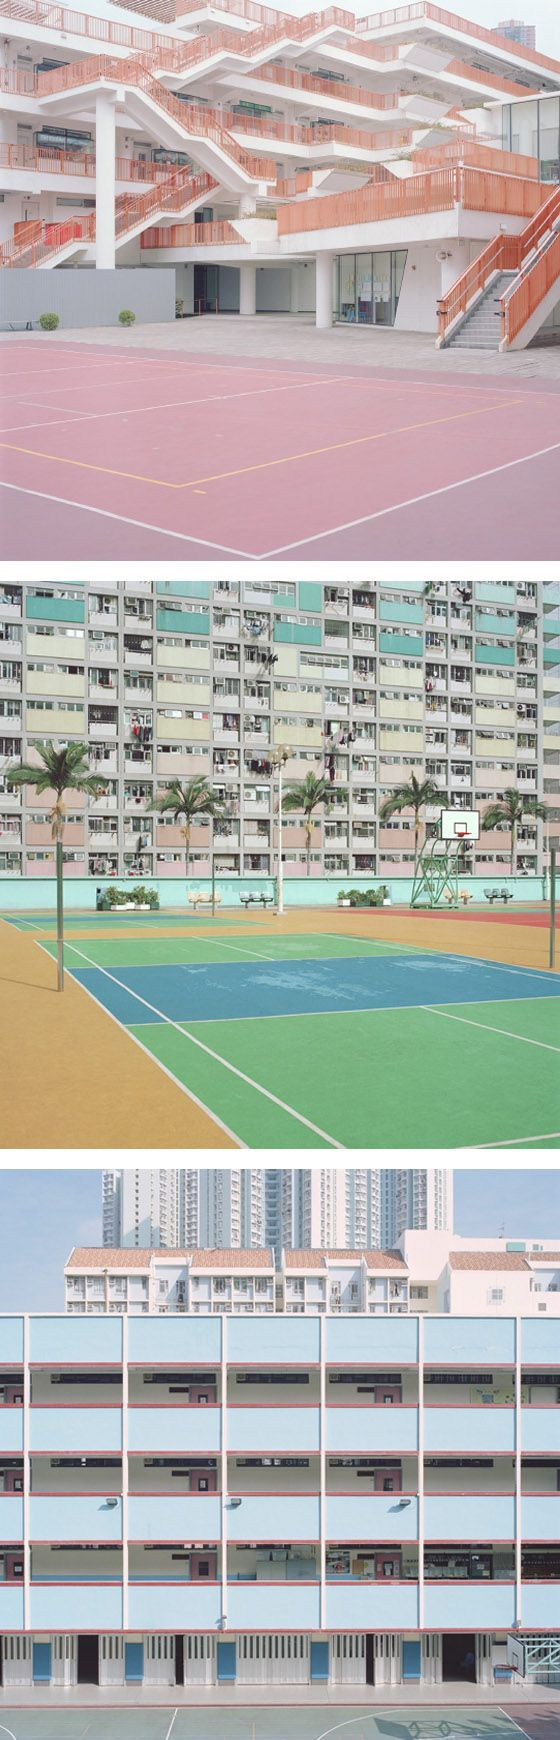 Courts by Ward Roberts - love the colours!